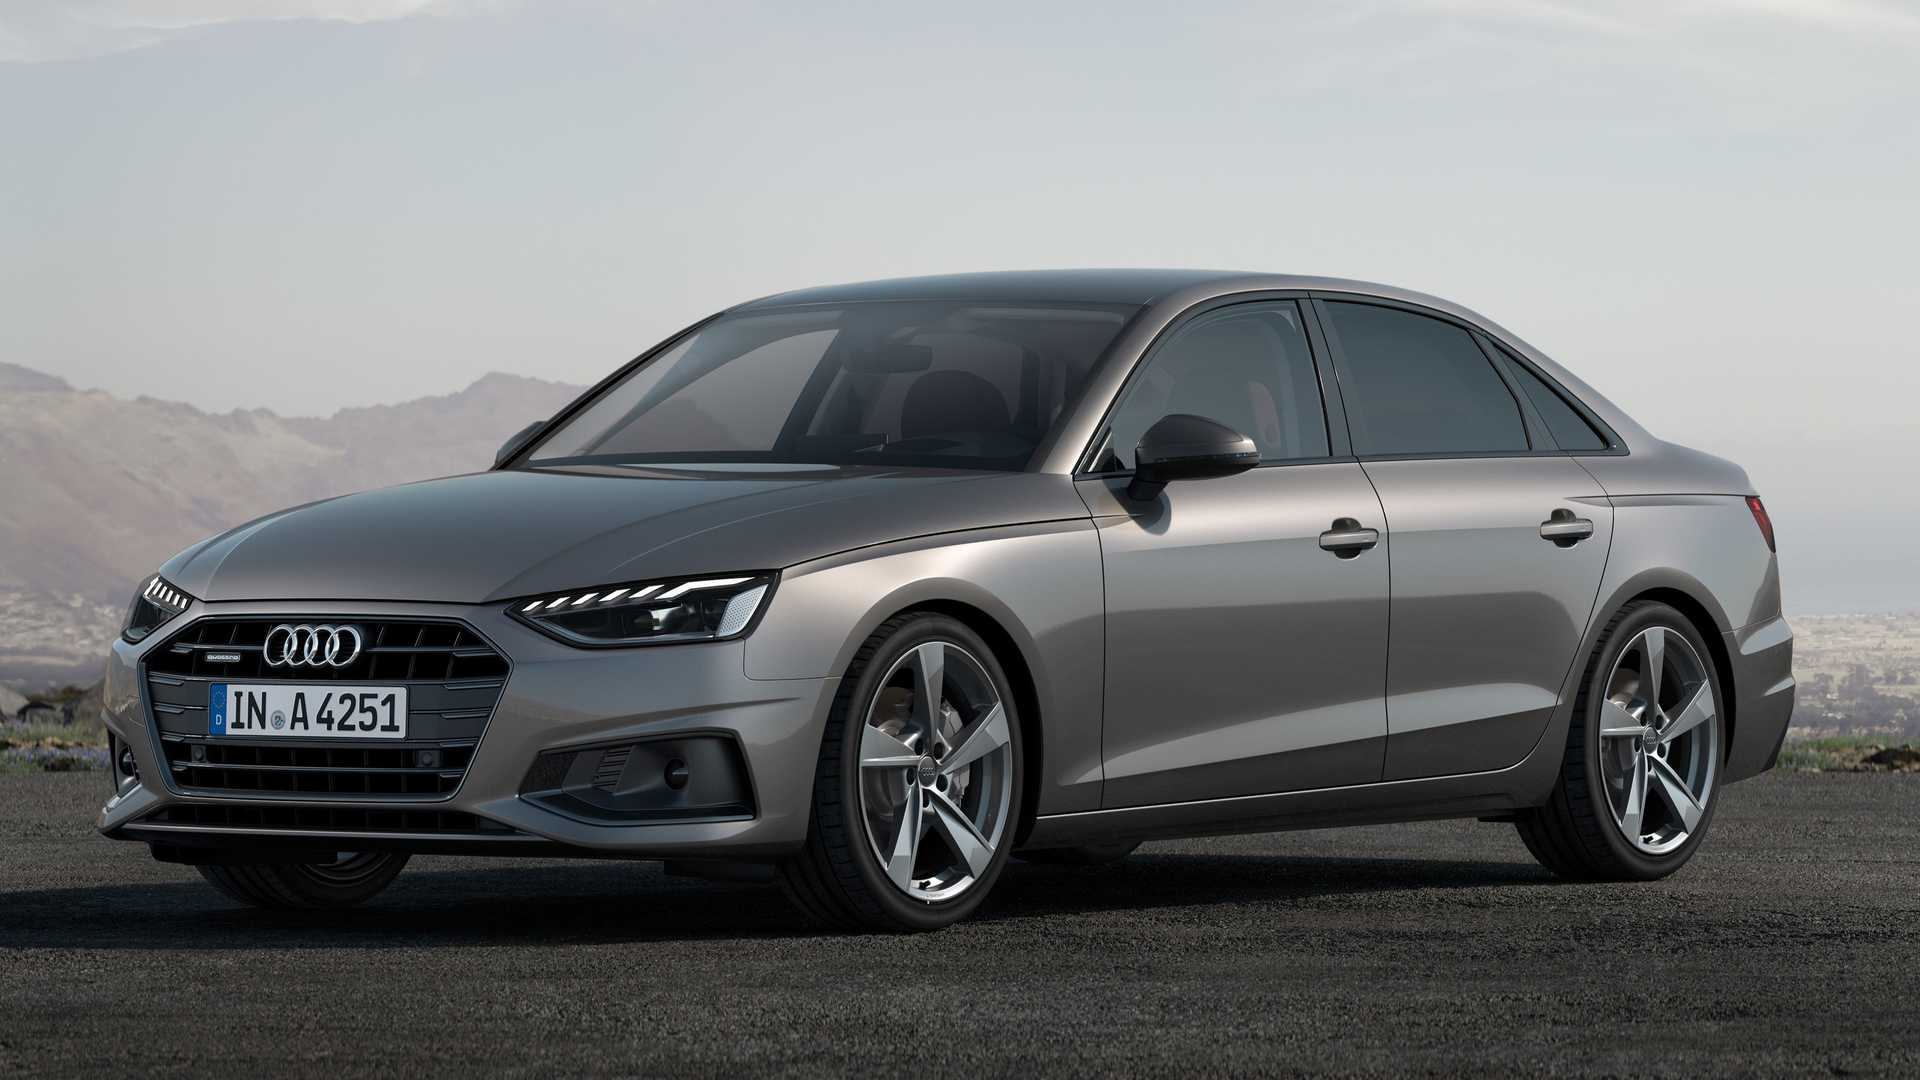 44 The Best Audi In 2020 Concept